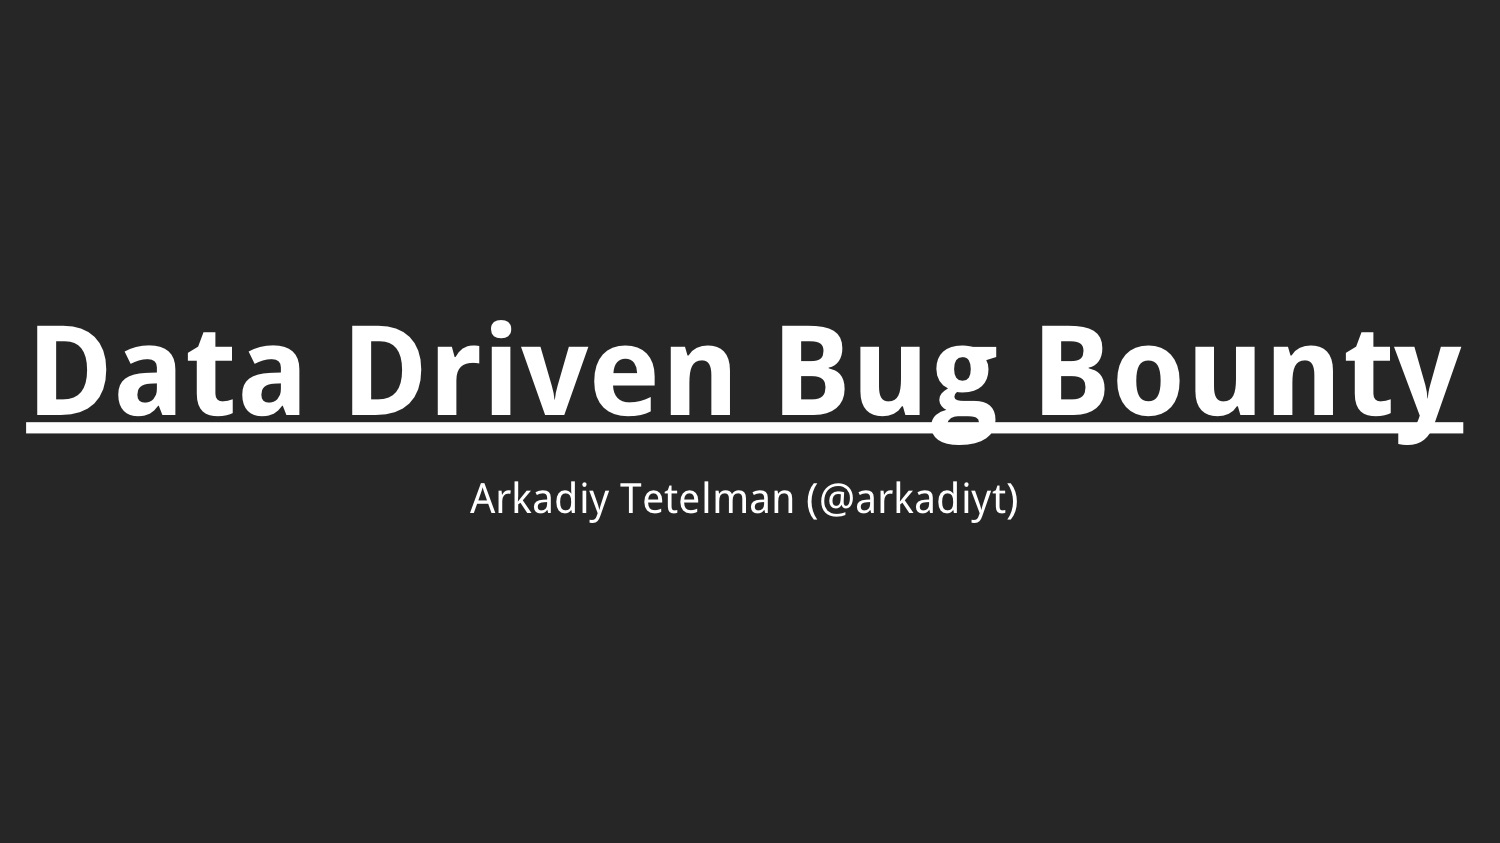 Data Driven Bug Bounty